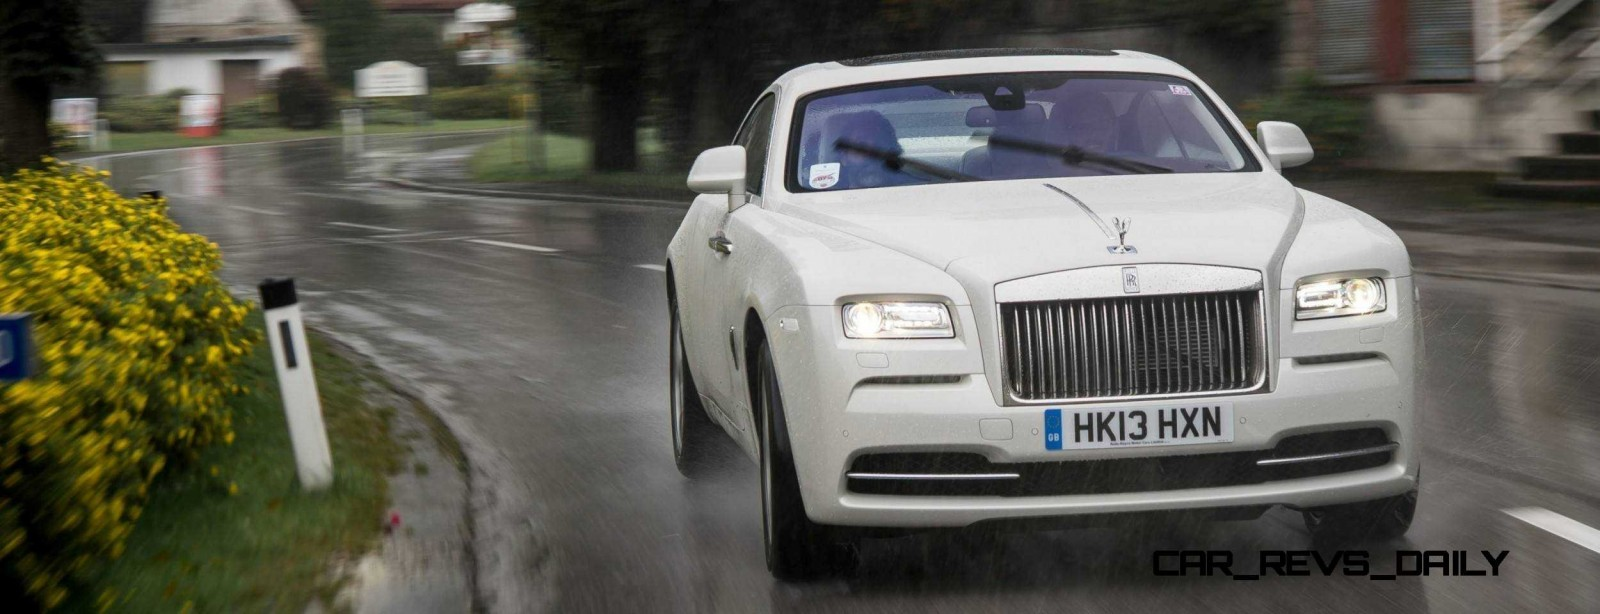 RR Wraith Carrara White Color Showcase CarRevsDaily65